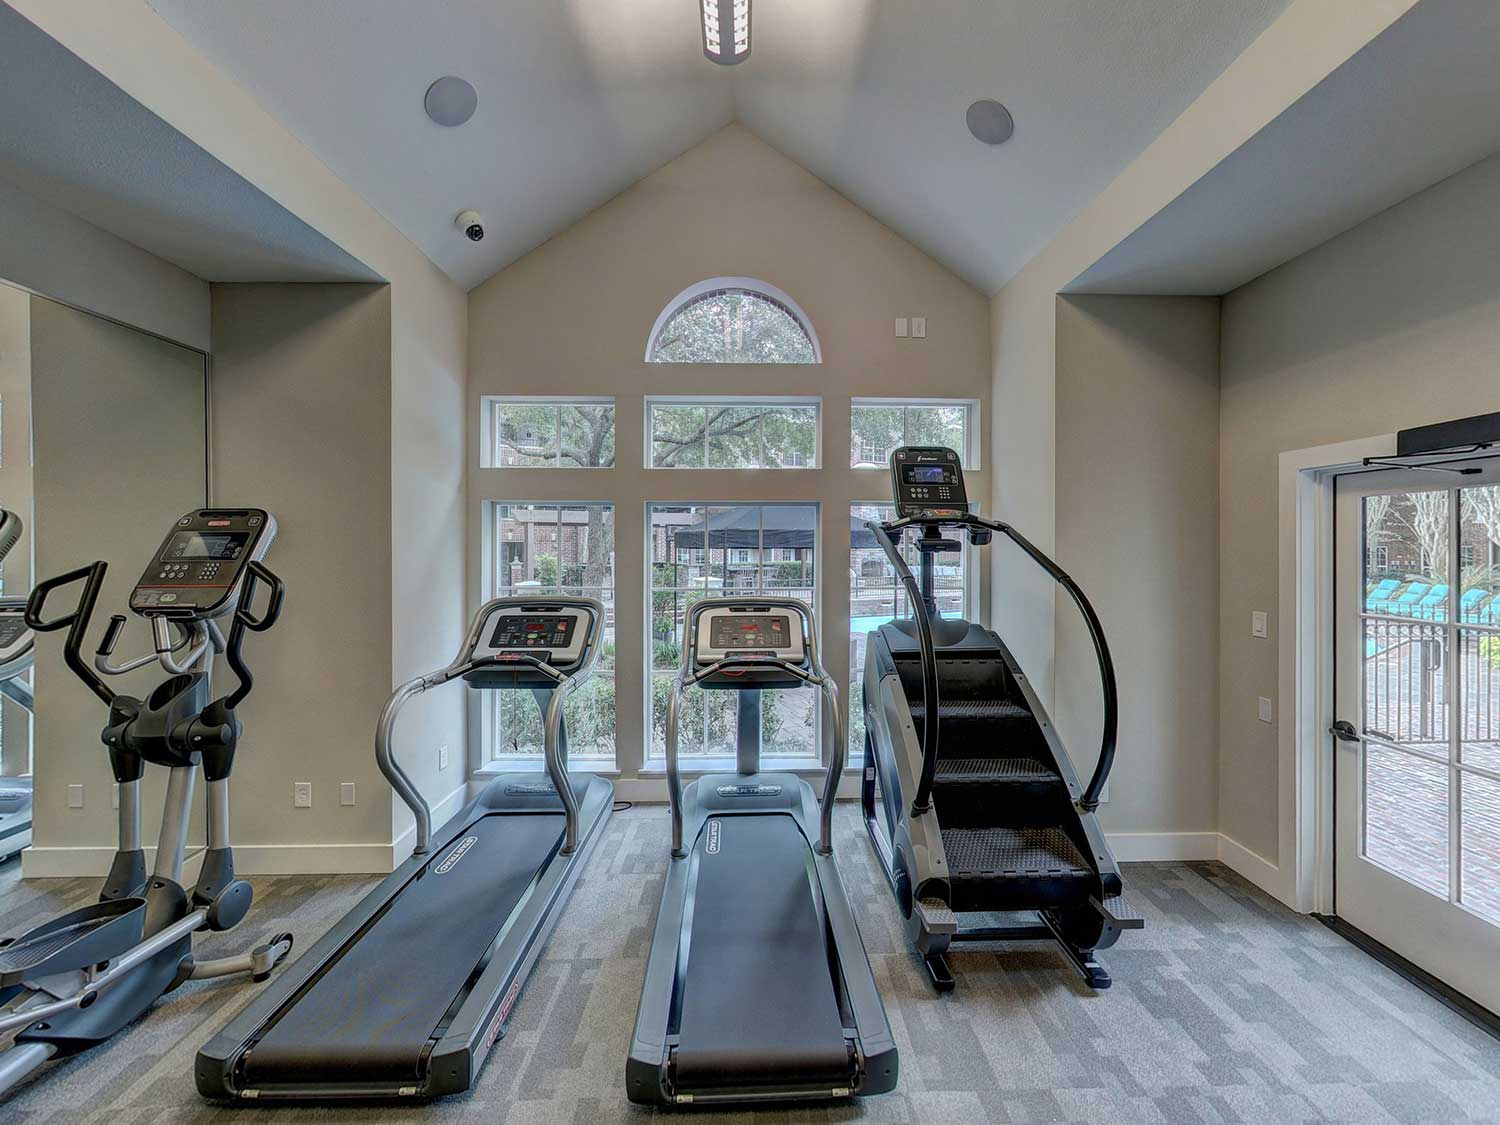 Treadmills and at home workout equipment in home gym.